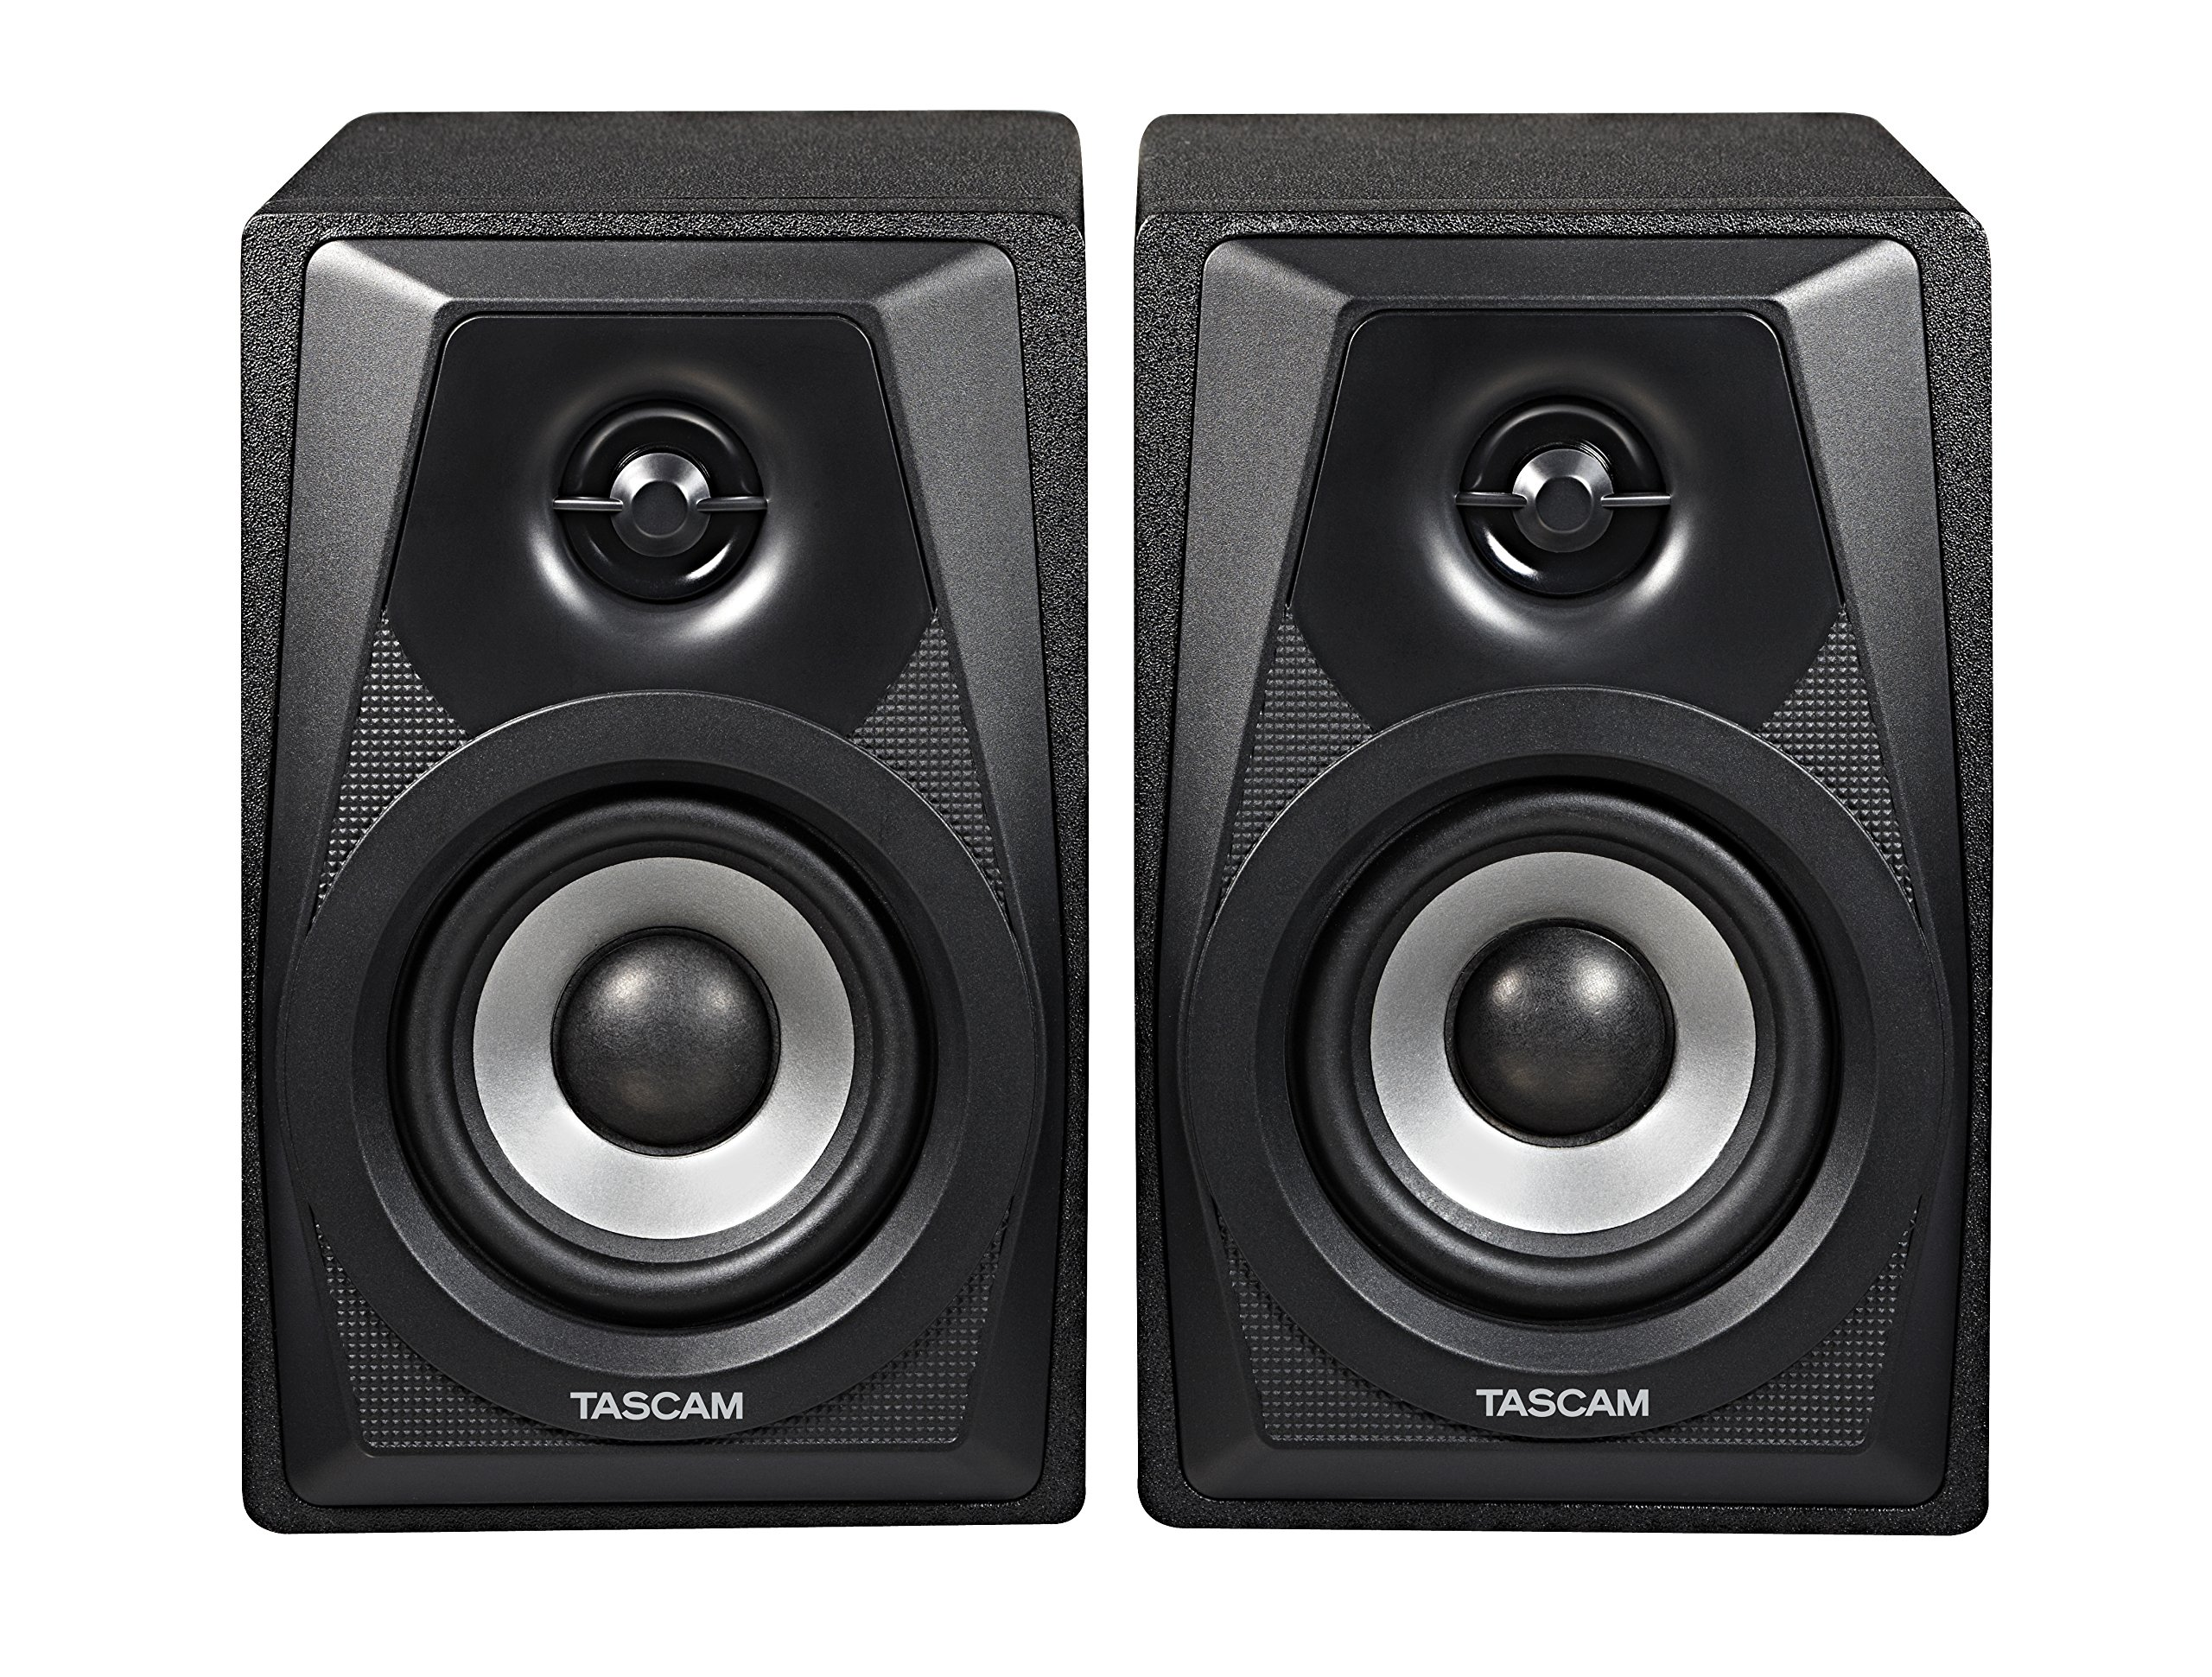 Tascam VL-S3BT 14 Watt 2-Way Powered Desktop Monitors With Bluetooth by Tascam